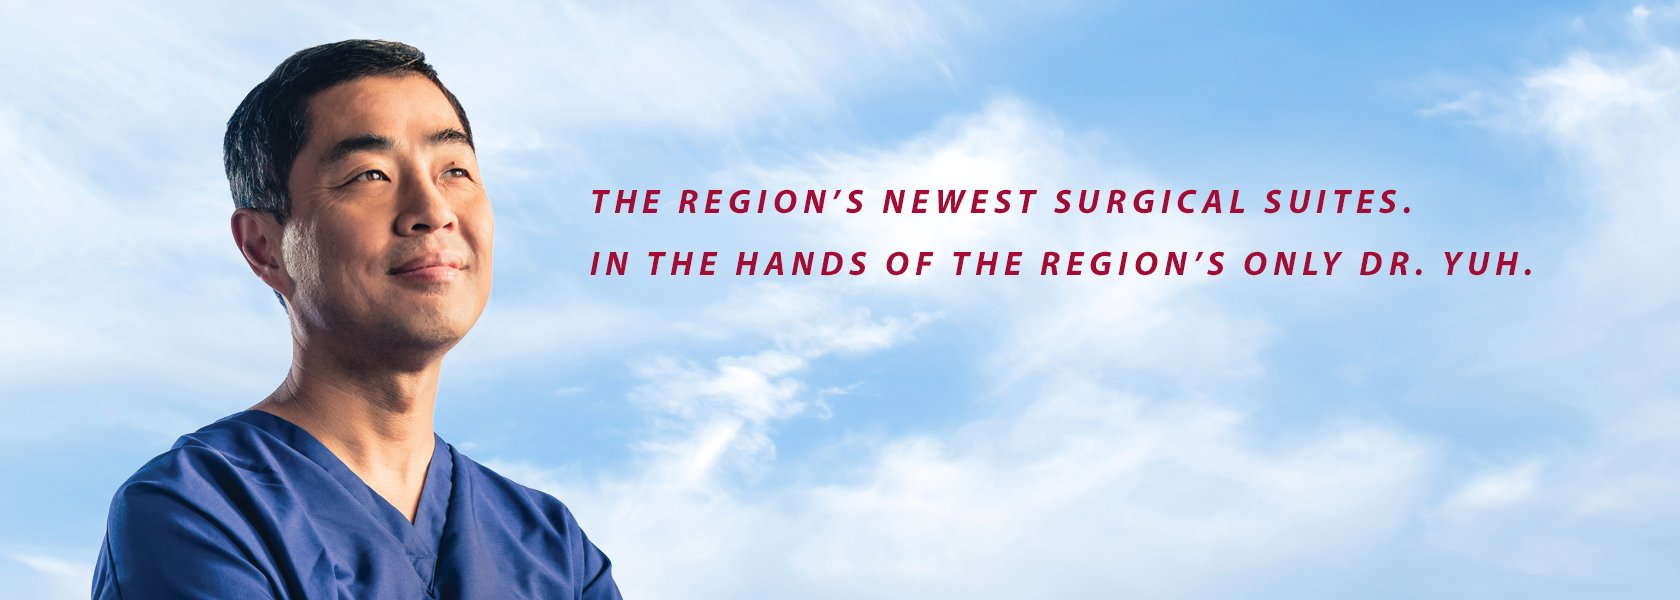 The region's newest surgical suites. In the hands of the region's only Dr. Yuh.